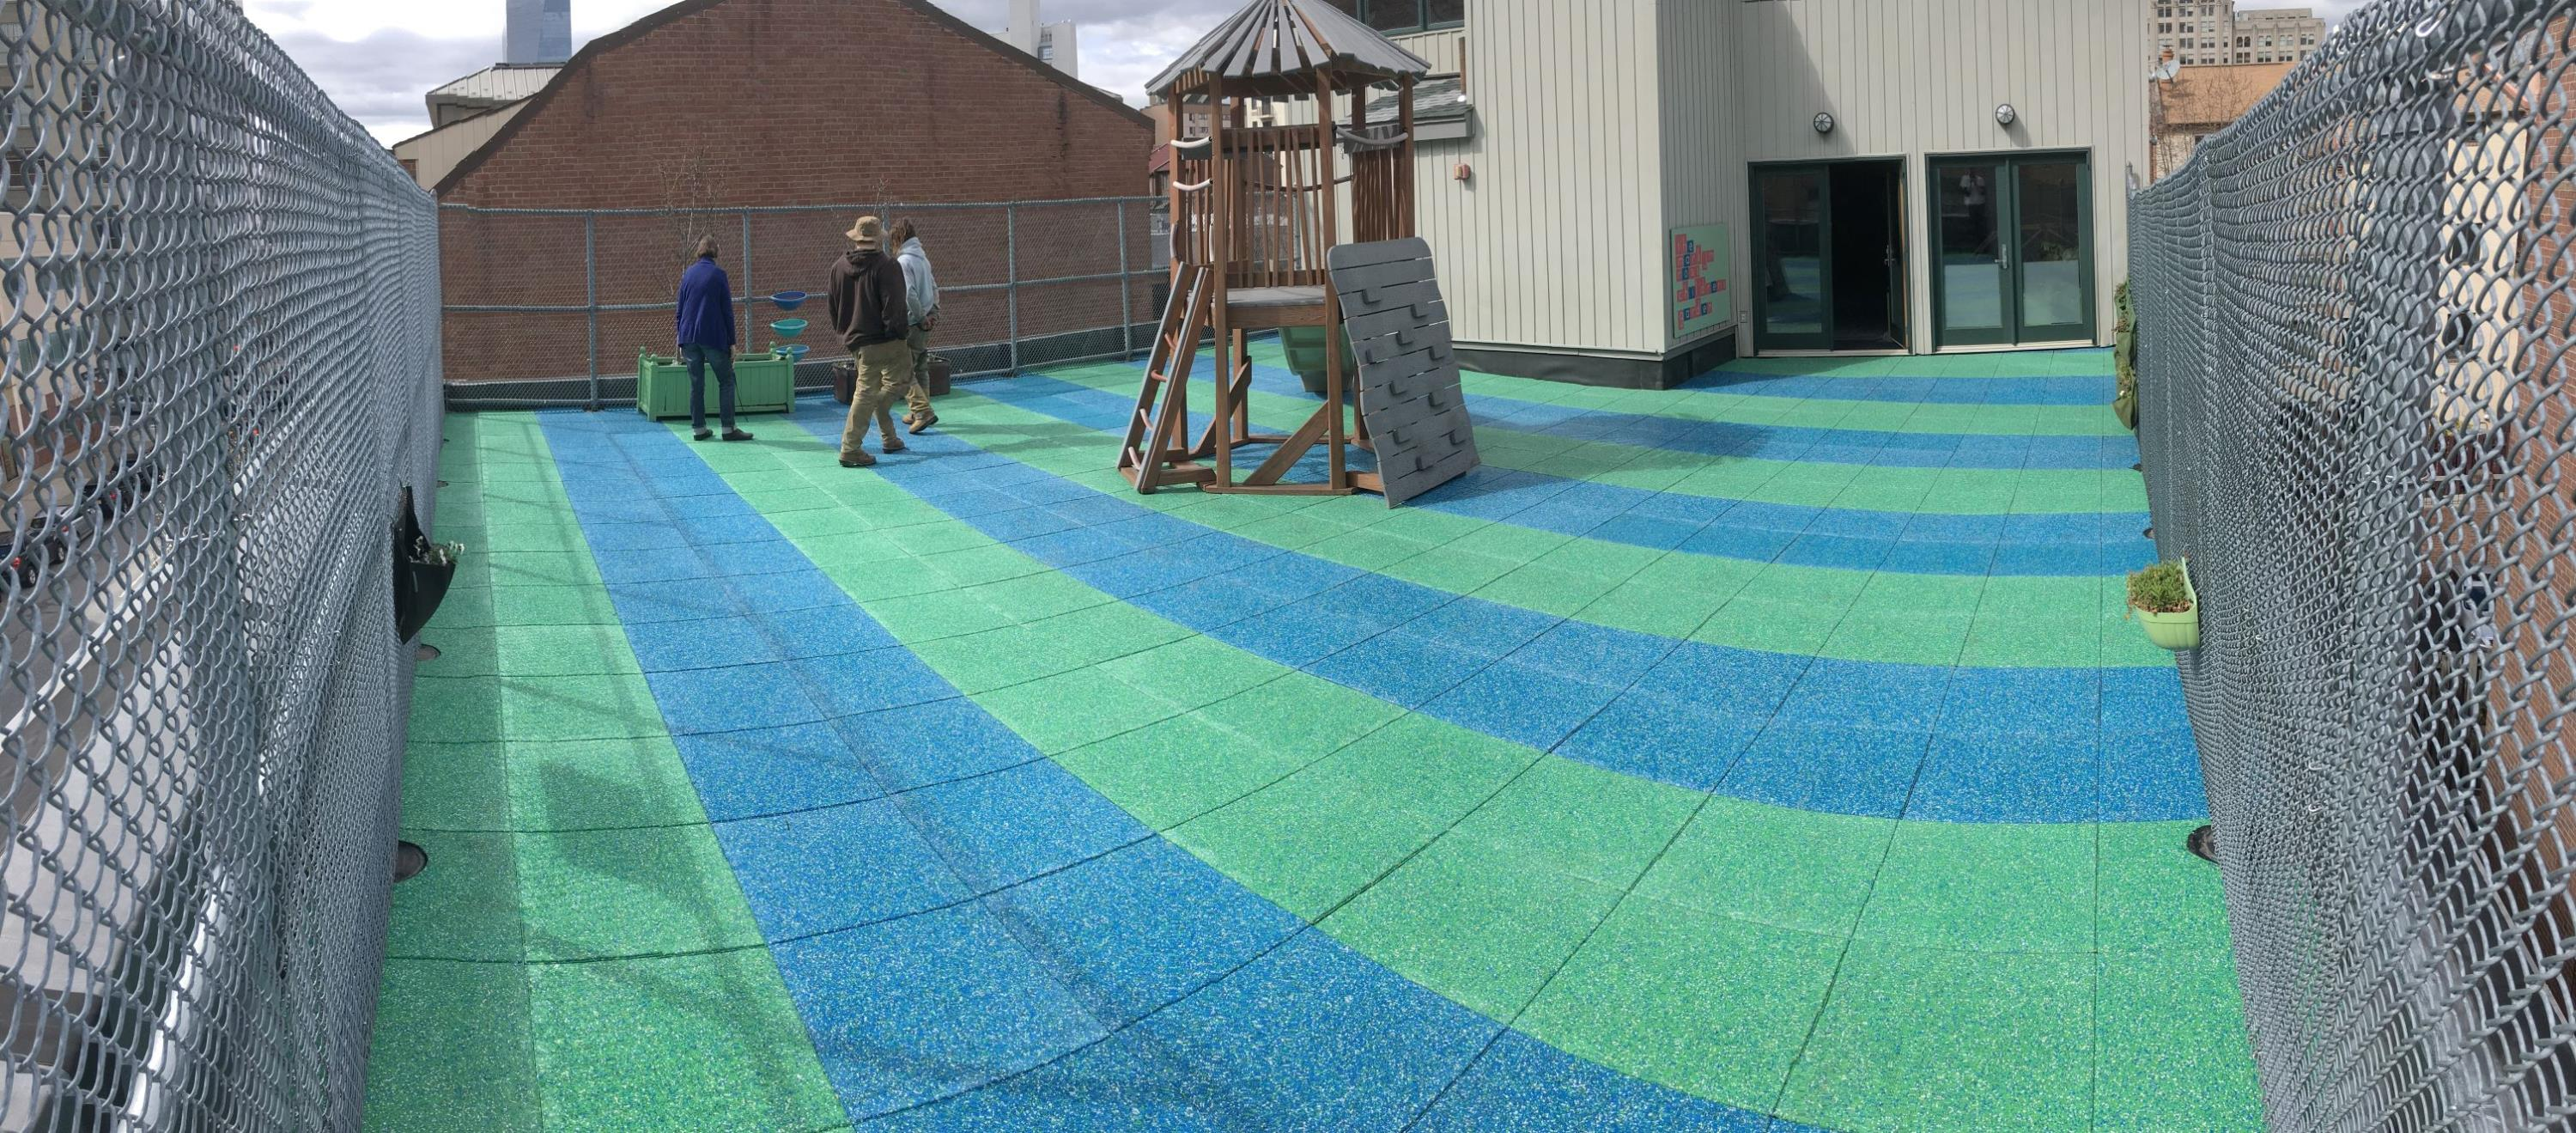 Rooftop Playground in Philly using custom blended TPV top pavers